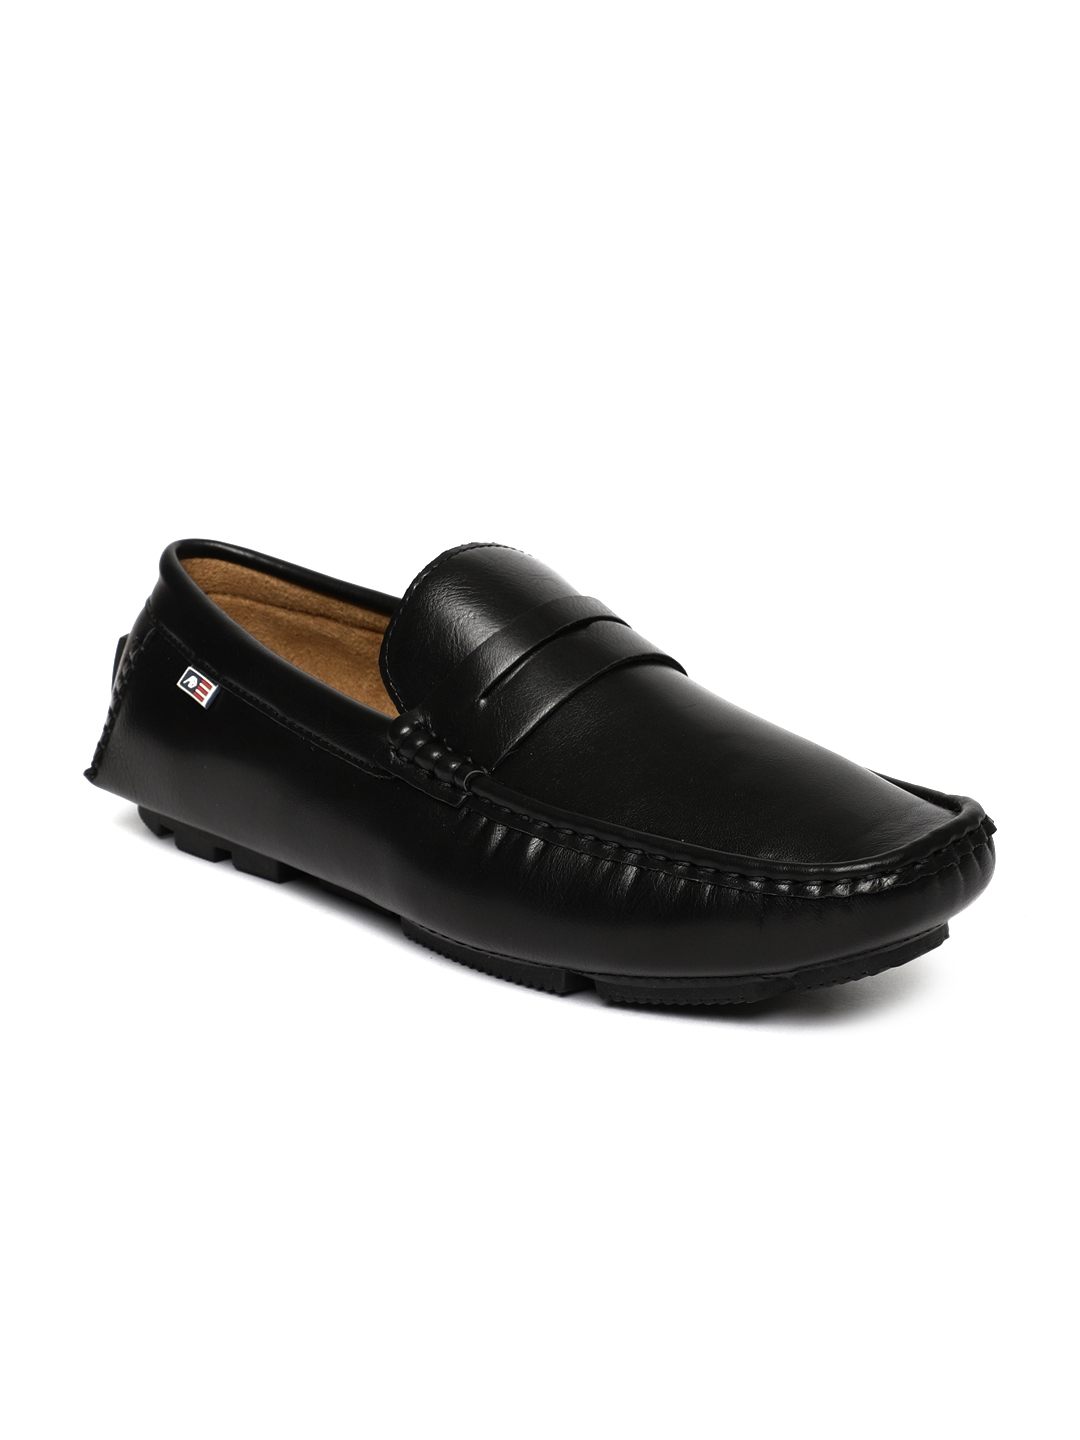 2cb51411ac5 Buy Arrow Men Black Solid Loafers - Casual Shoes for Men 4267876 ...